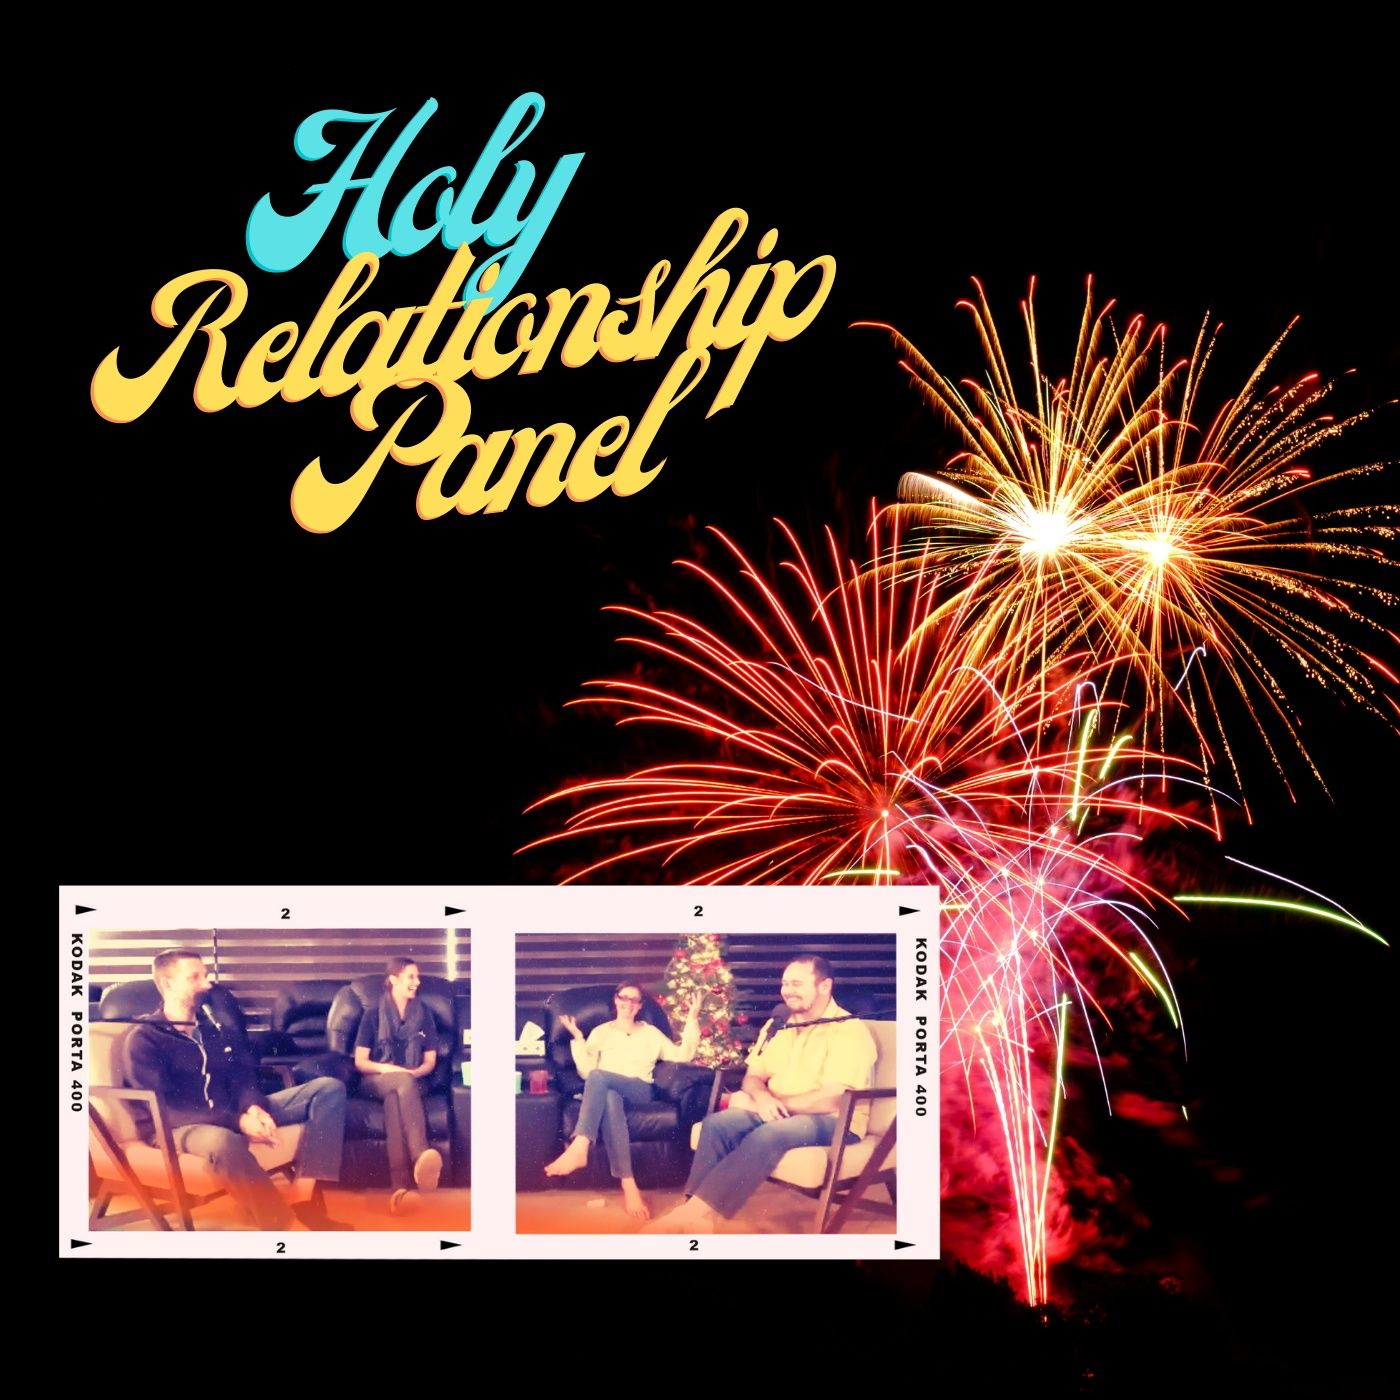 """The Holy Relationship Panel - """"Celebration of Illumination - The Joy of Time's End"""" Online Event"""